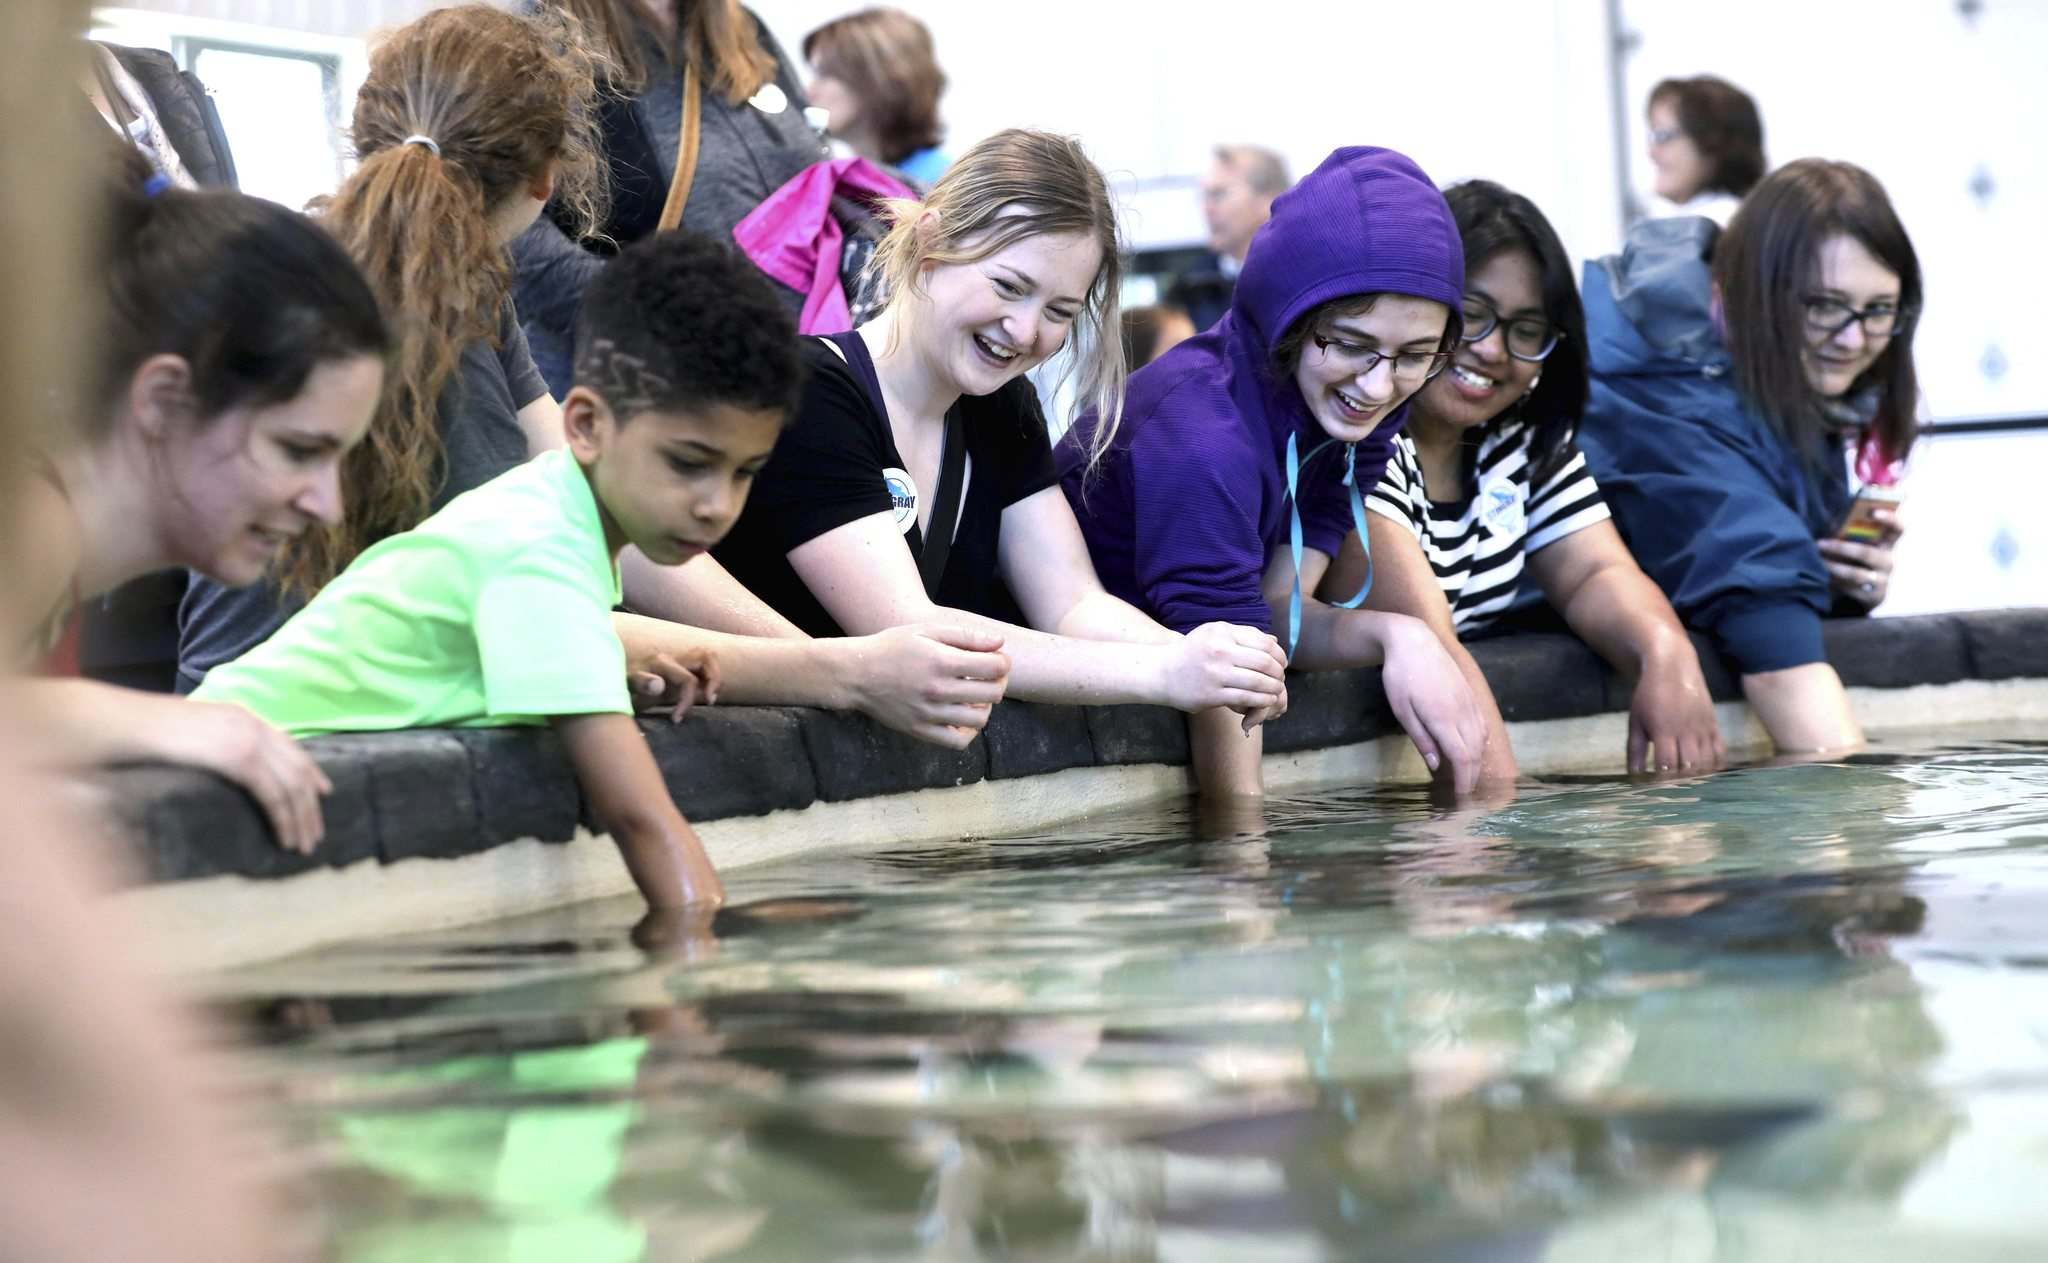 The Assiniboine Park Zoo's new Stingray Beach exhibit officially opened with visitors of all ages rolling up their sleeves to experience the squishy, slimy touch of a stingray Thursday.